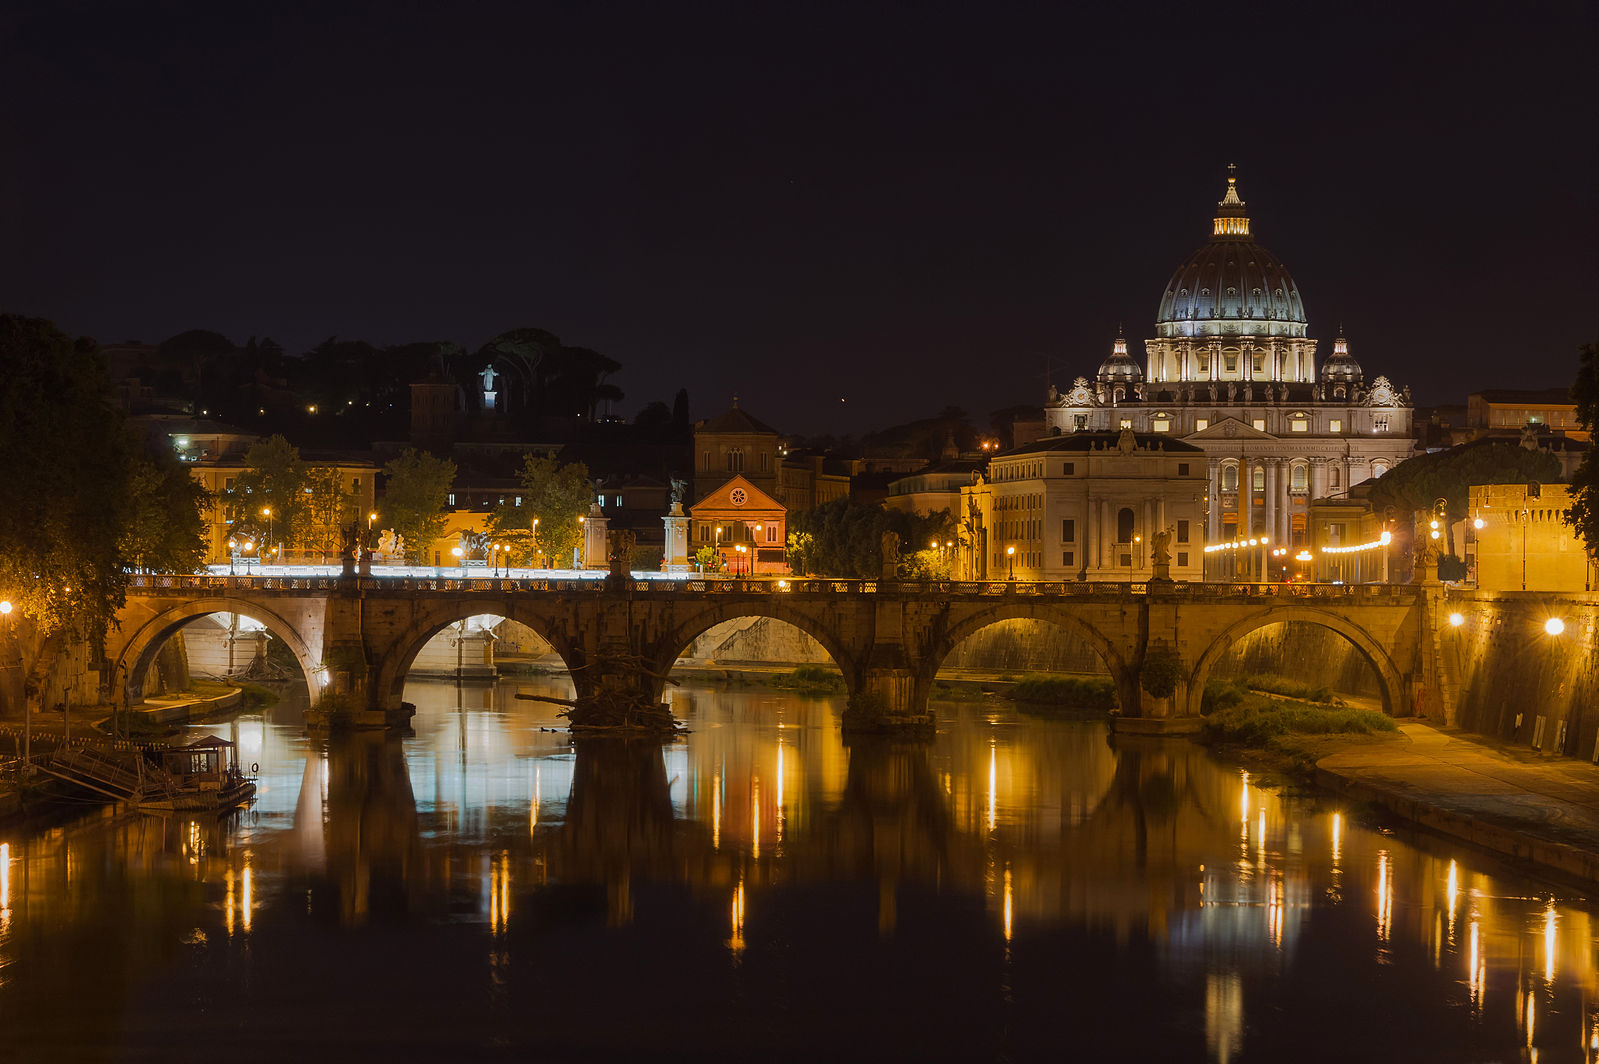 Saint Angelo Bridge over the Tiber River with the St. Peter's Basilica in the background. Rome, Italy.